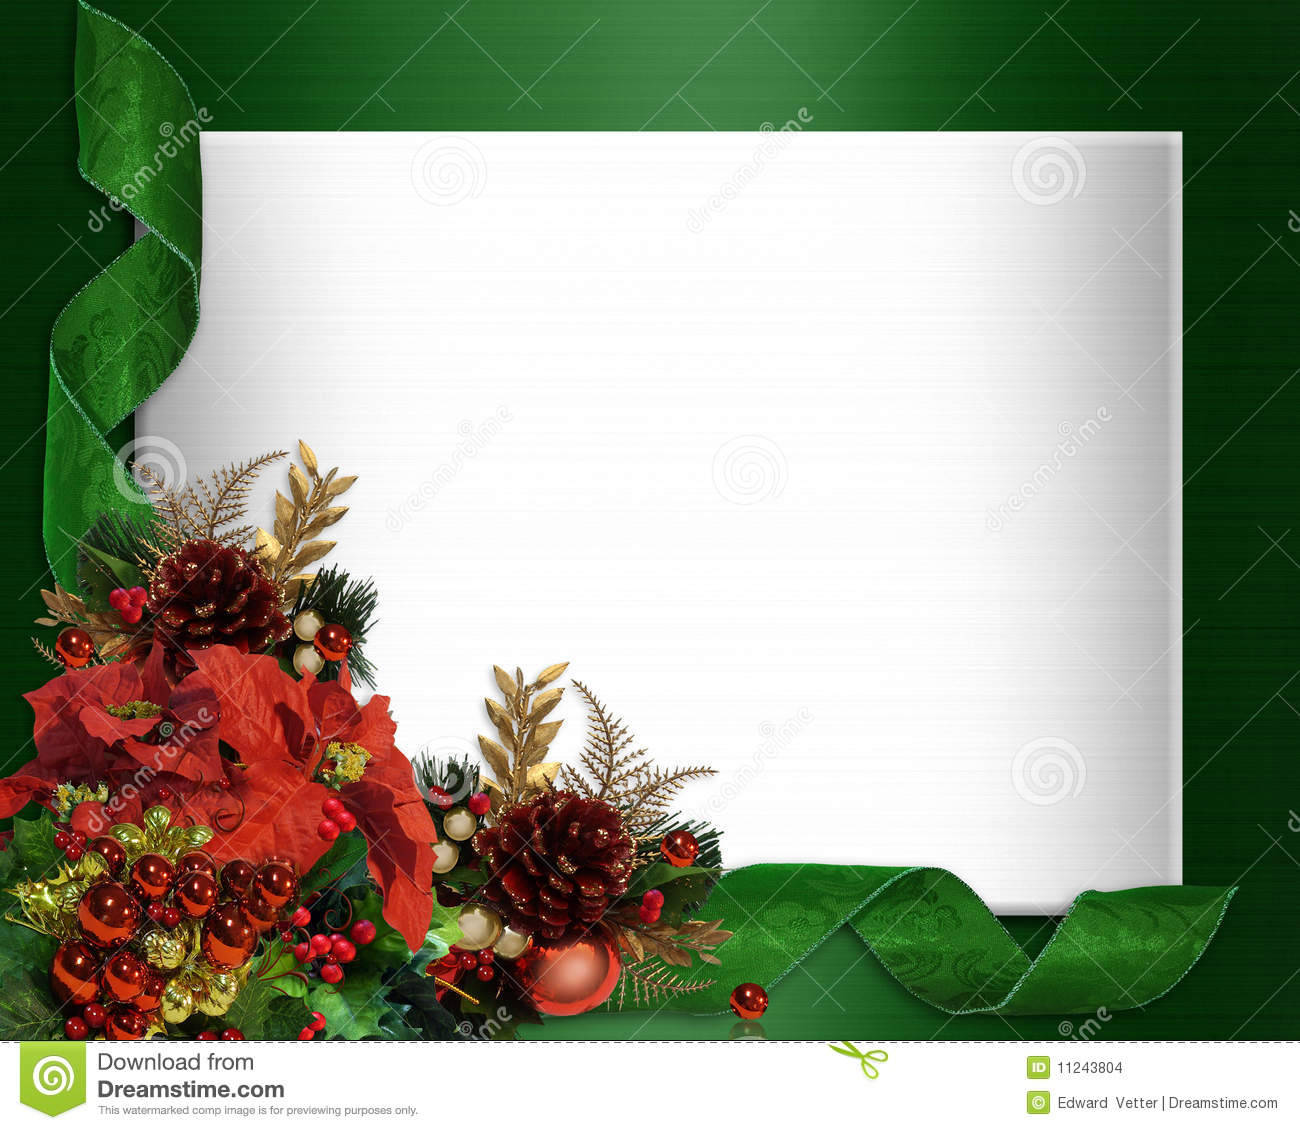 Christmas border elegant stock illustration illustration of christmas border elegant kristyandbryce Image collections